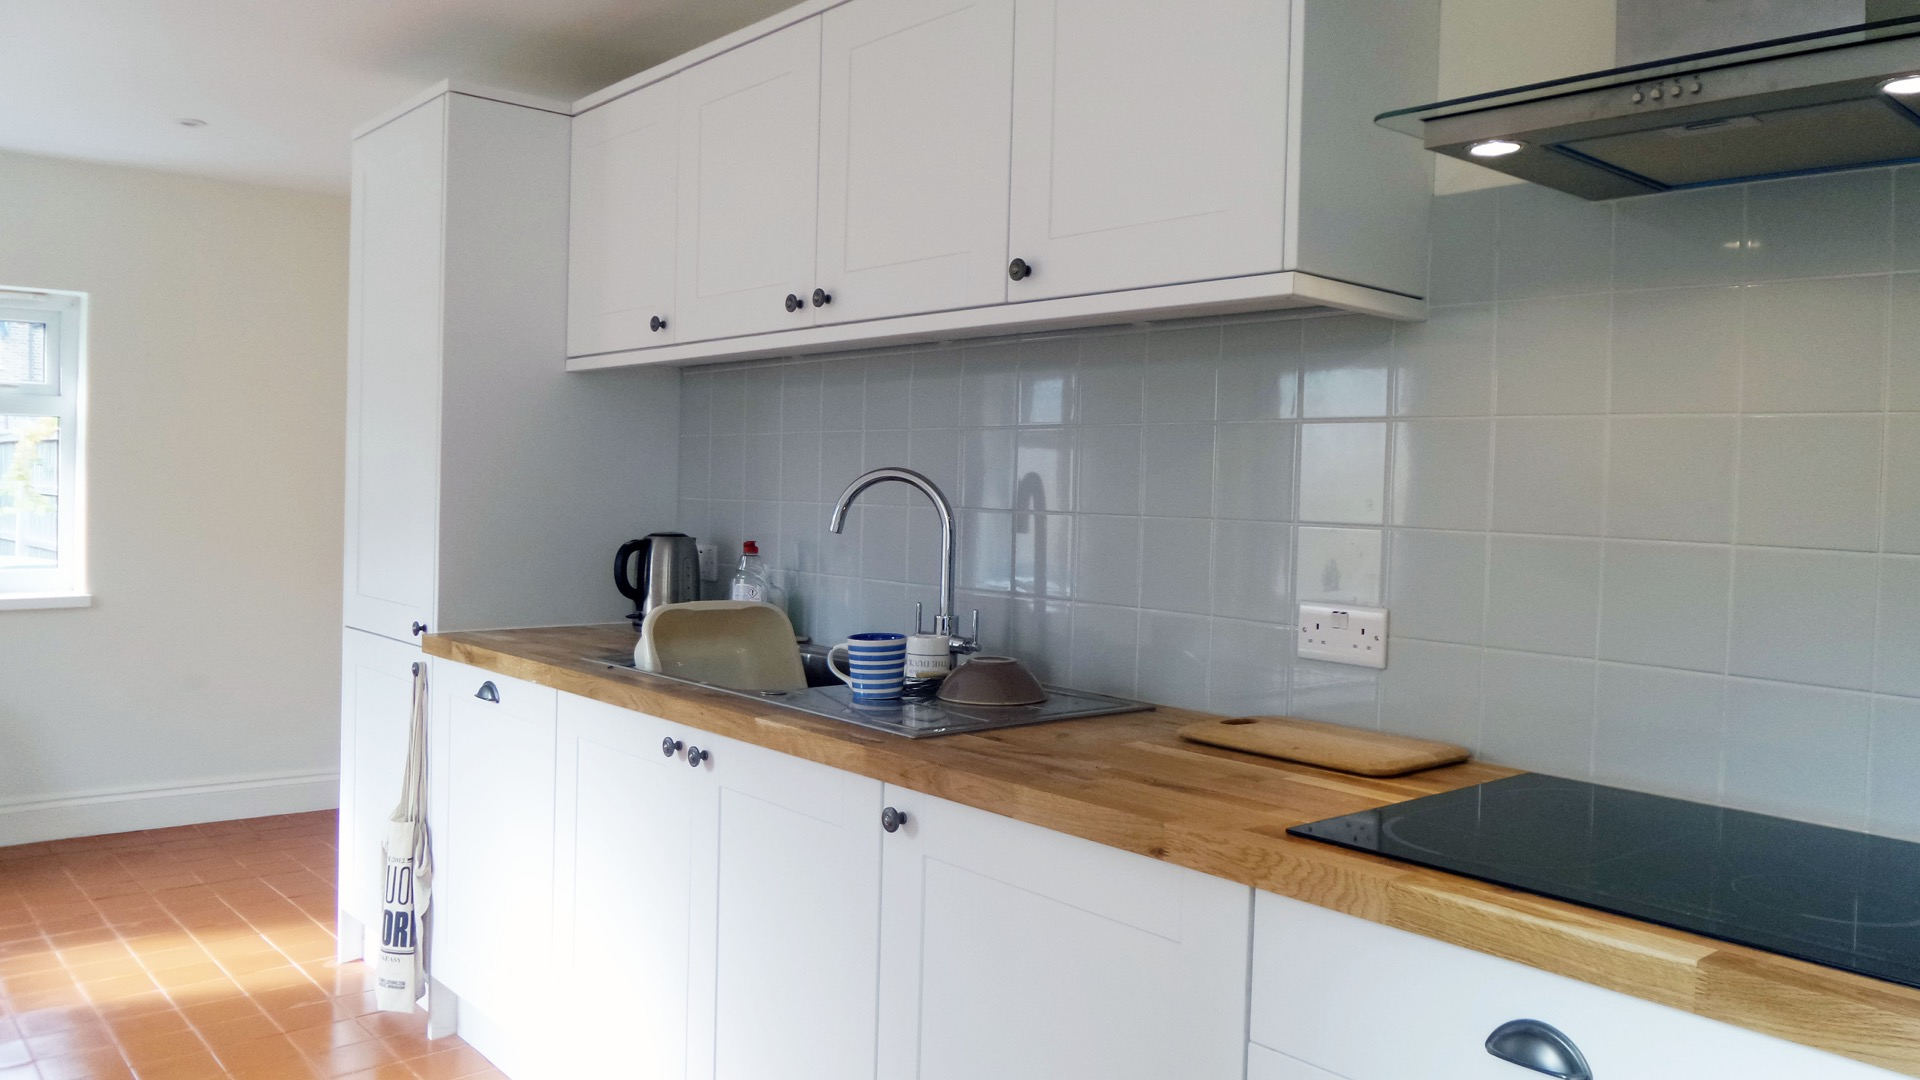 Comprehensive kitchen fitting